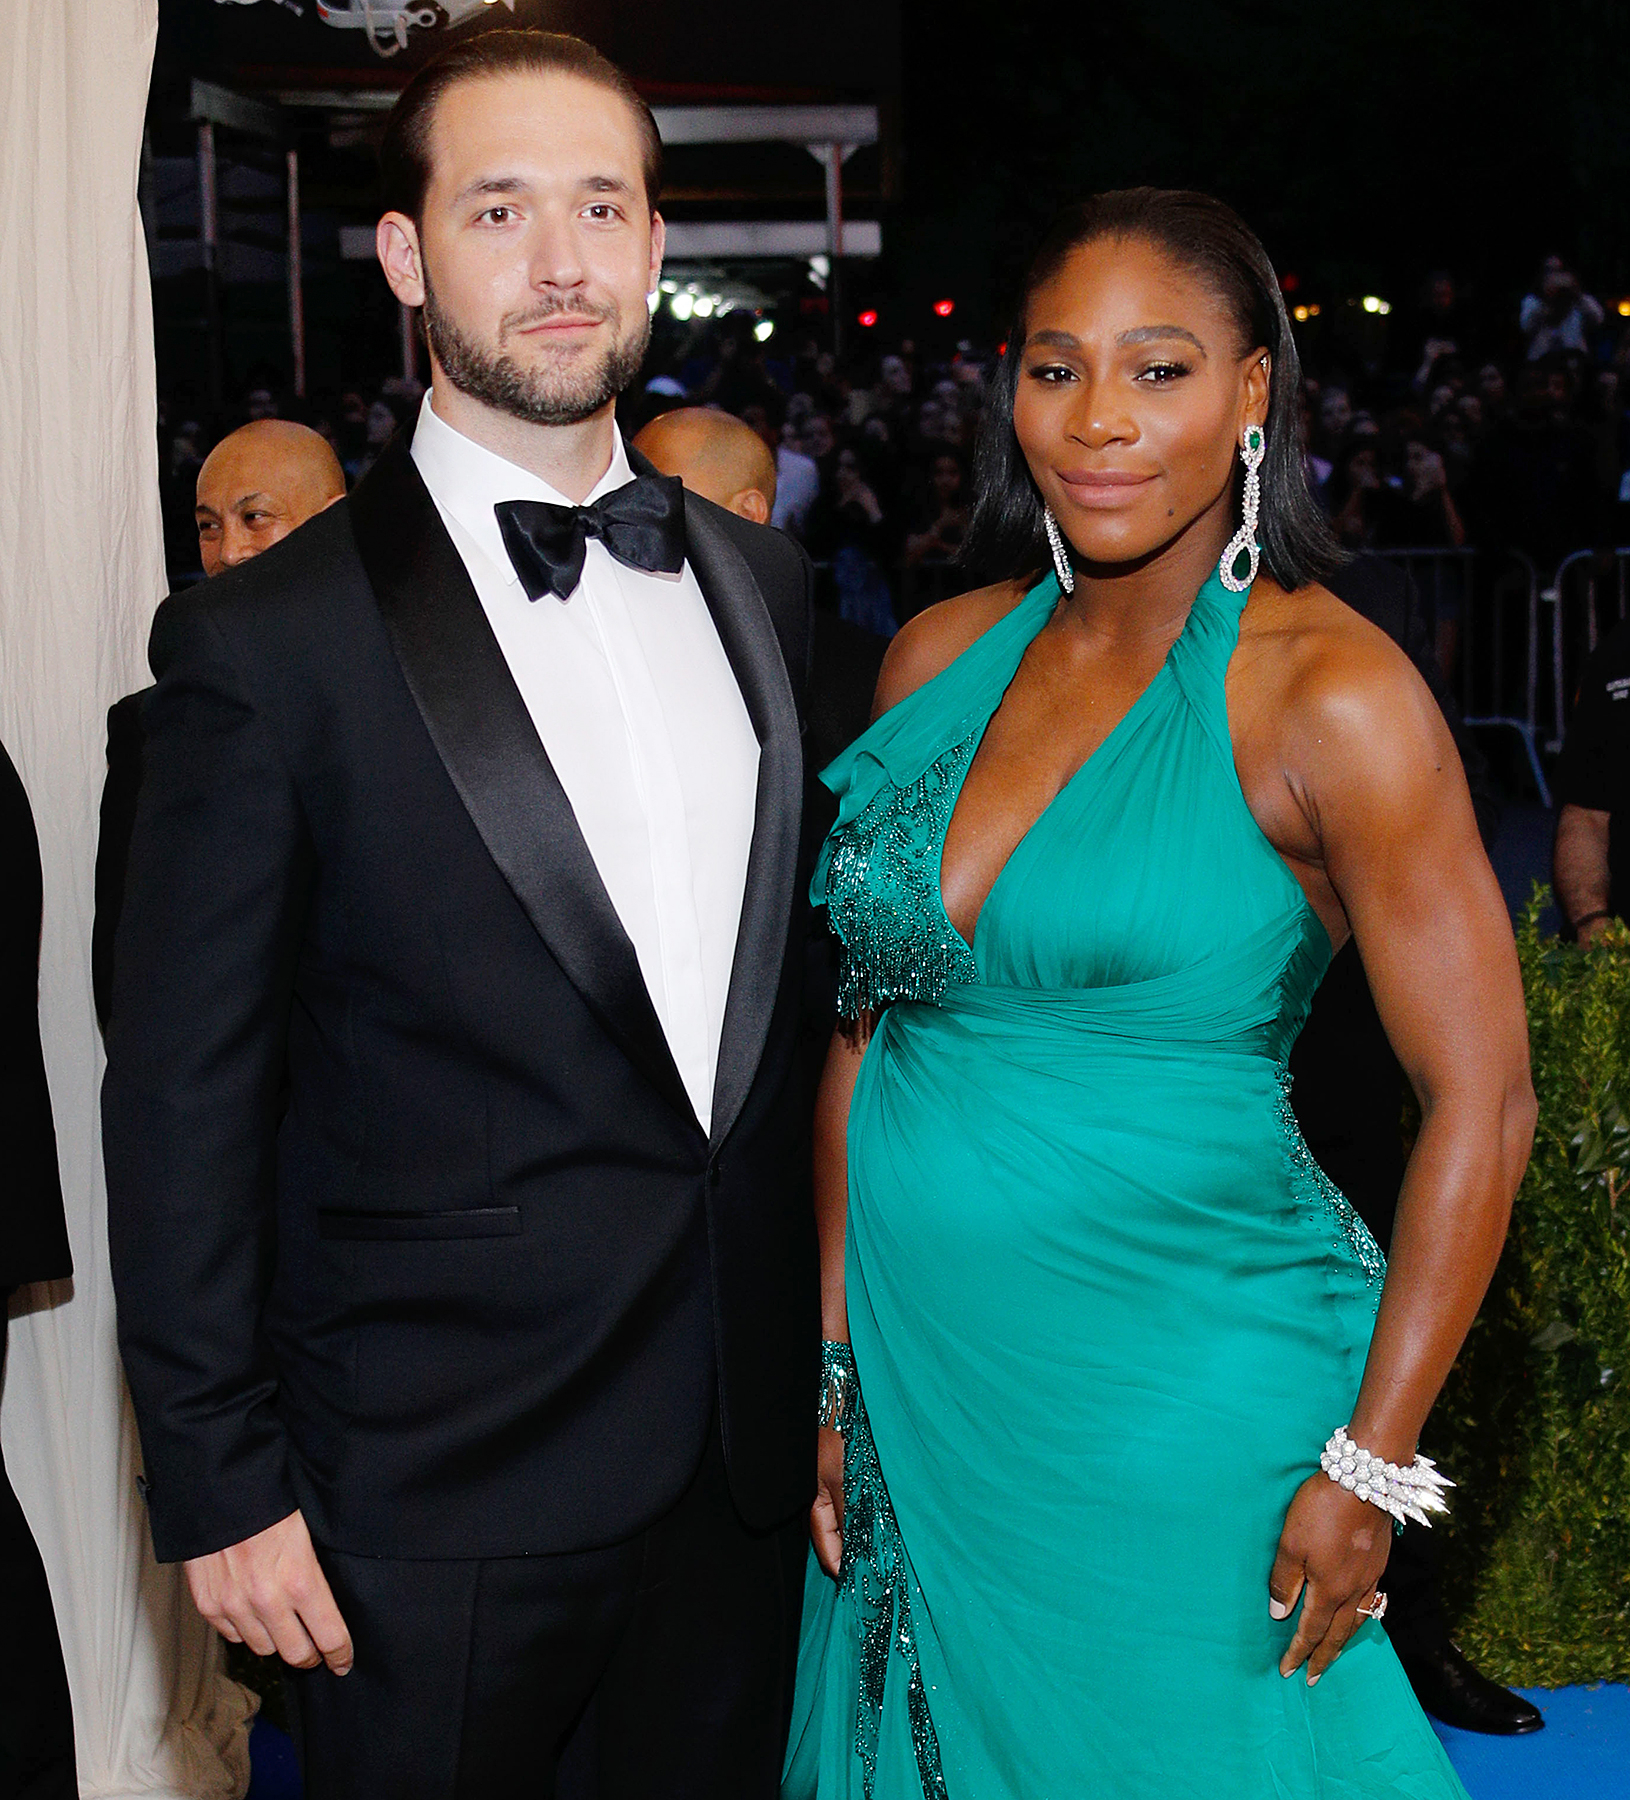 Alexis Ohanian Serena Williams